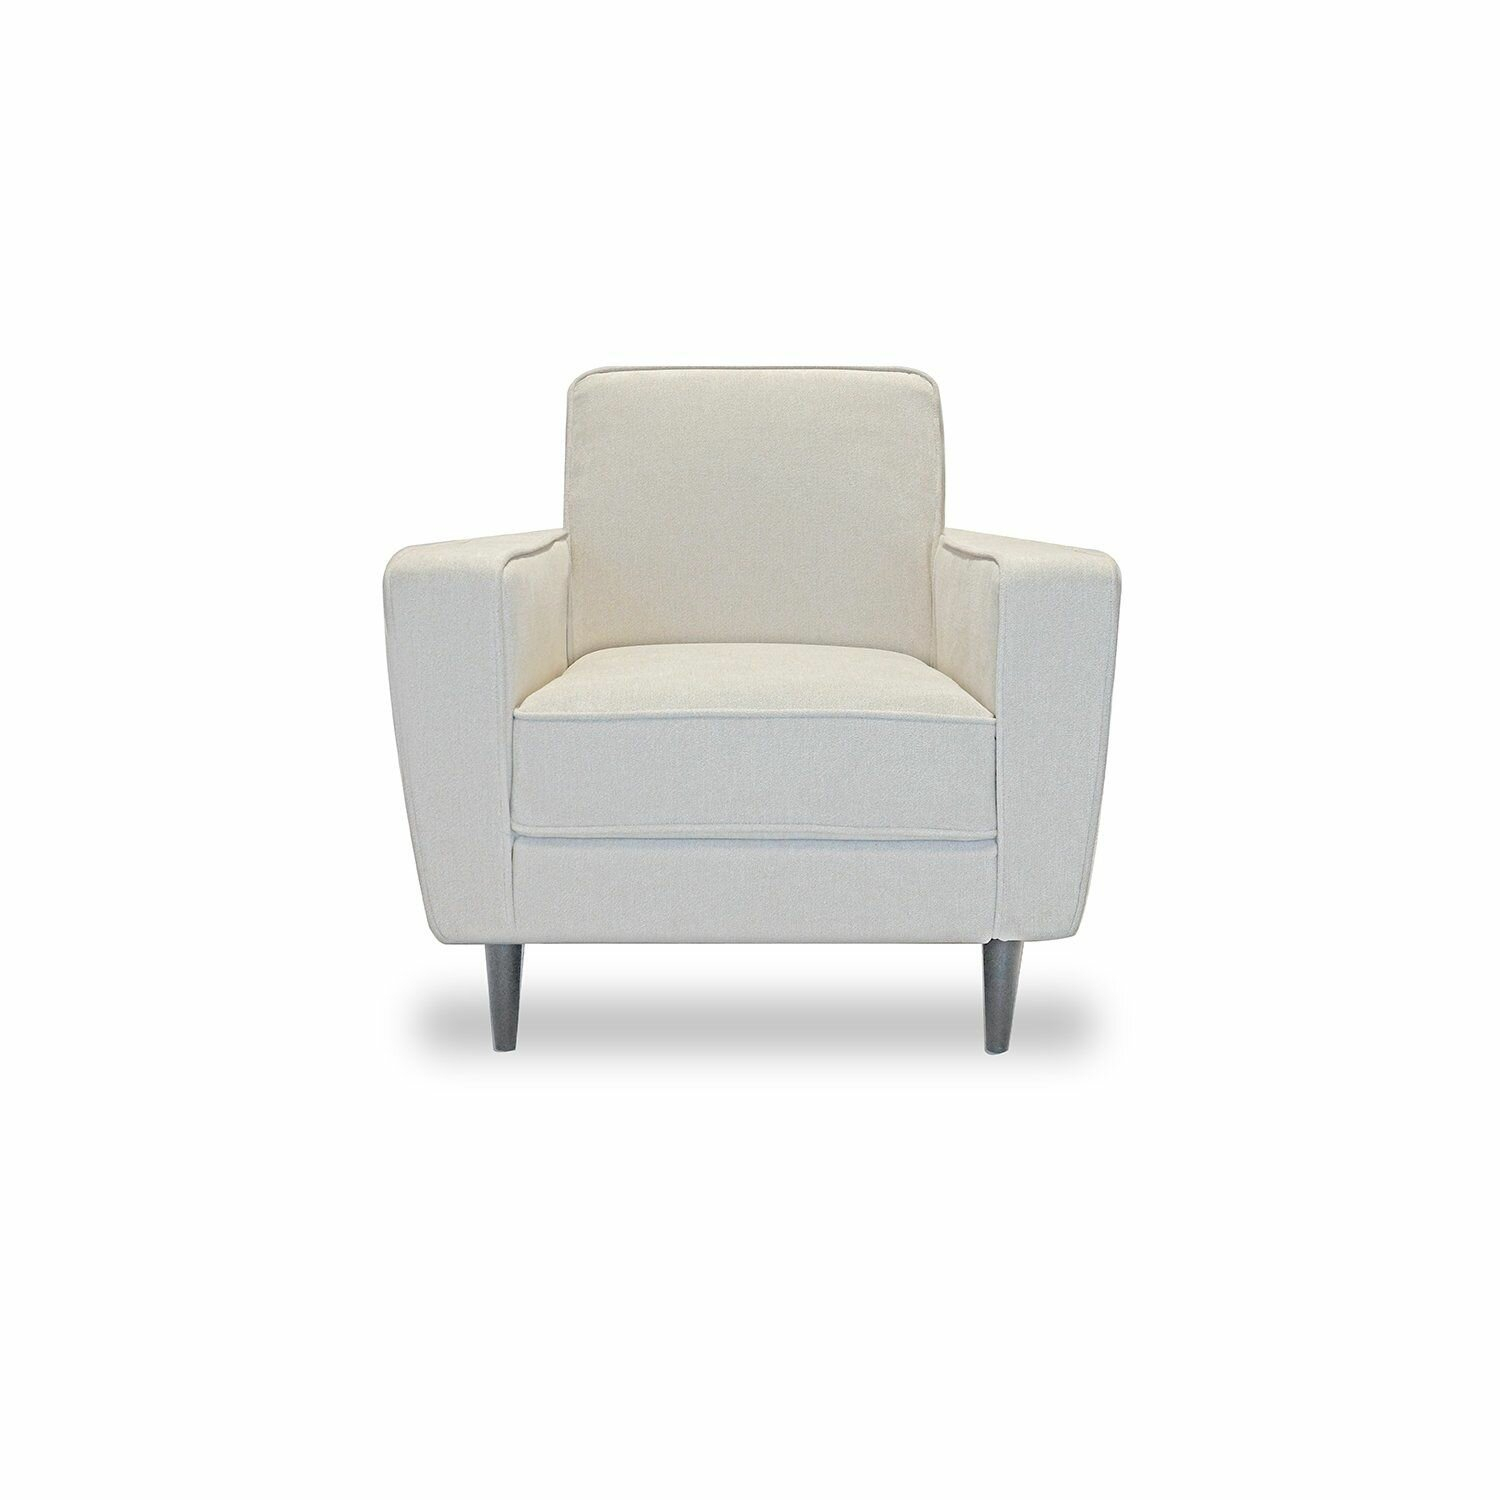 Harmony Club Chair Throughout Harmoni Armchairs (View 15 of 15)